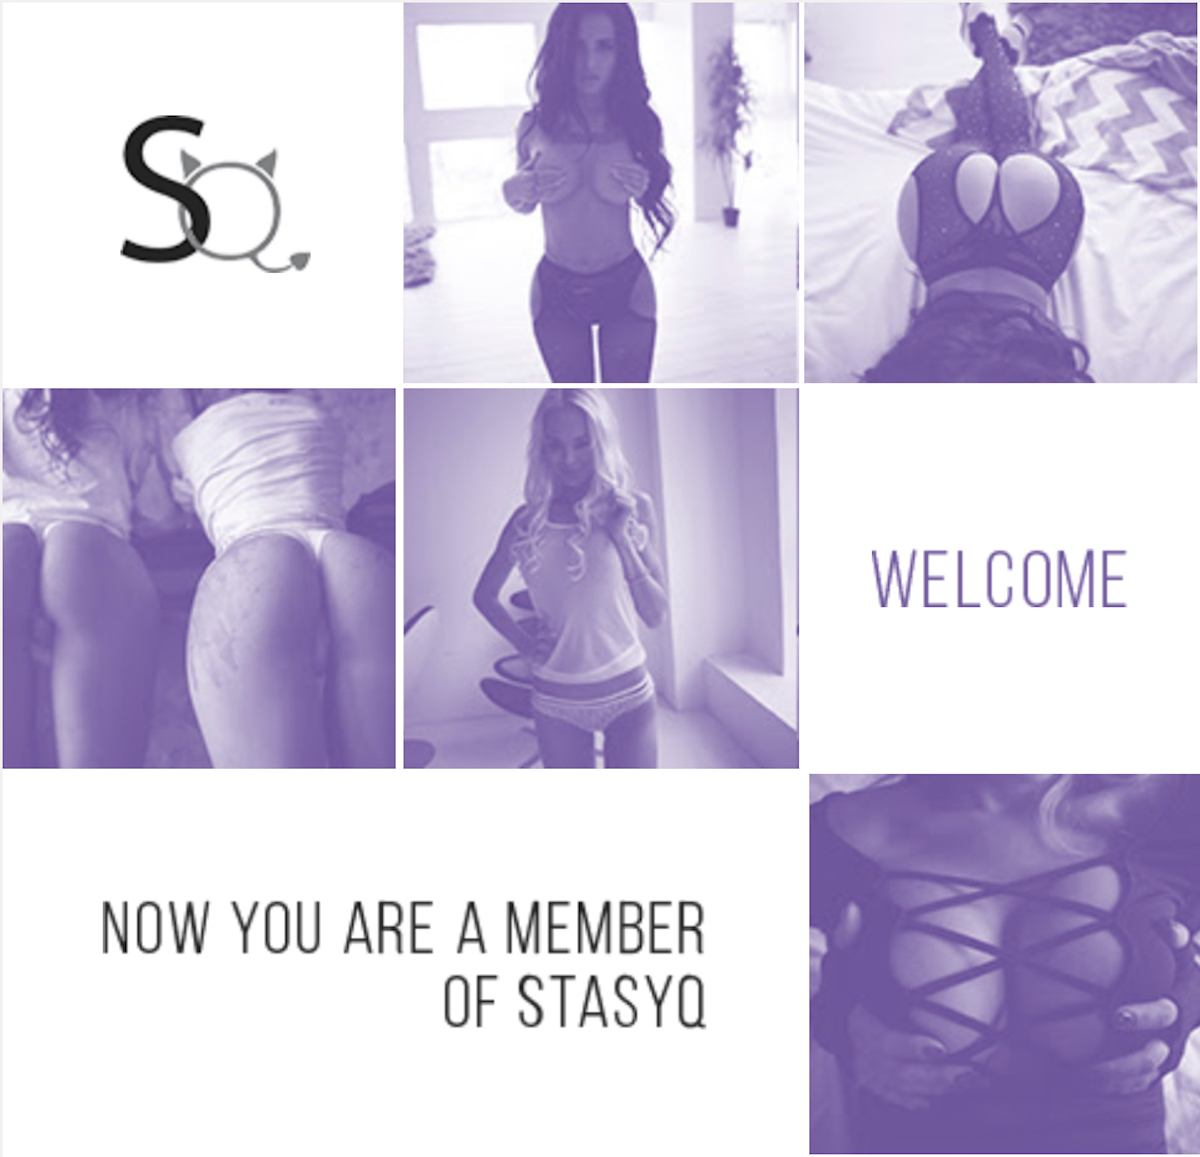 stasyq membership review